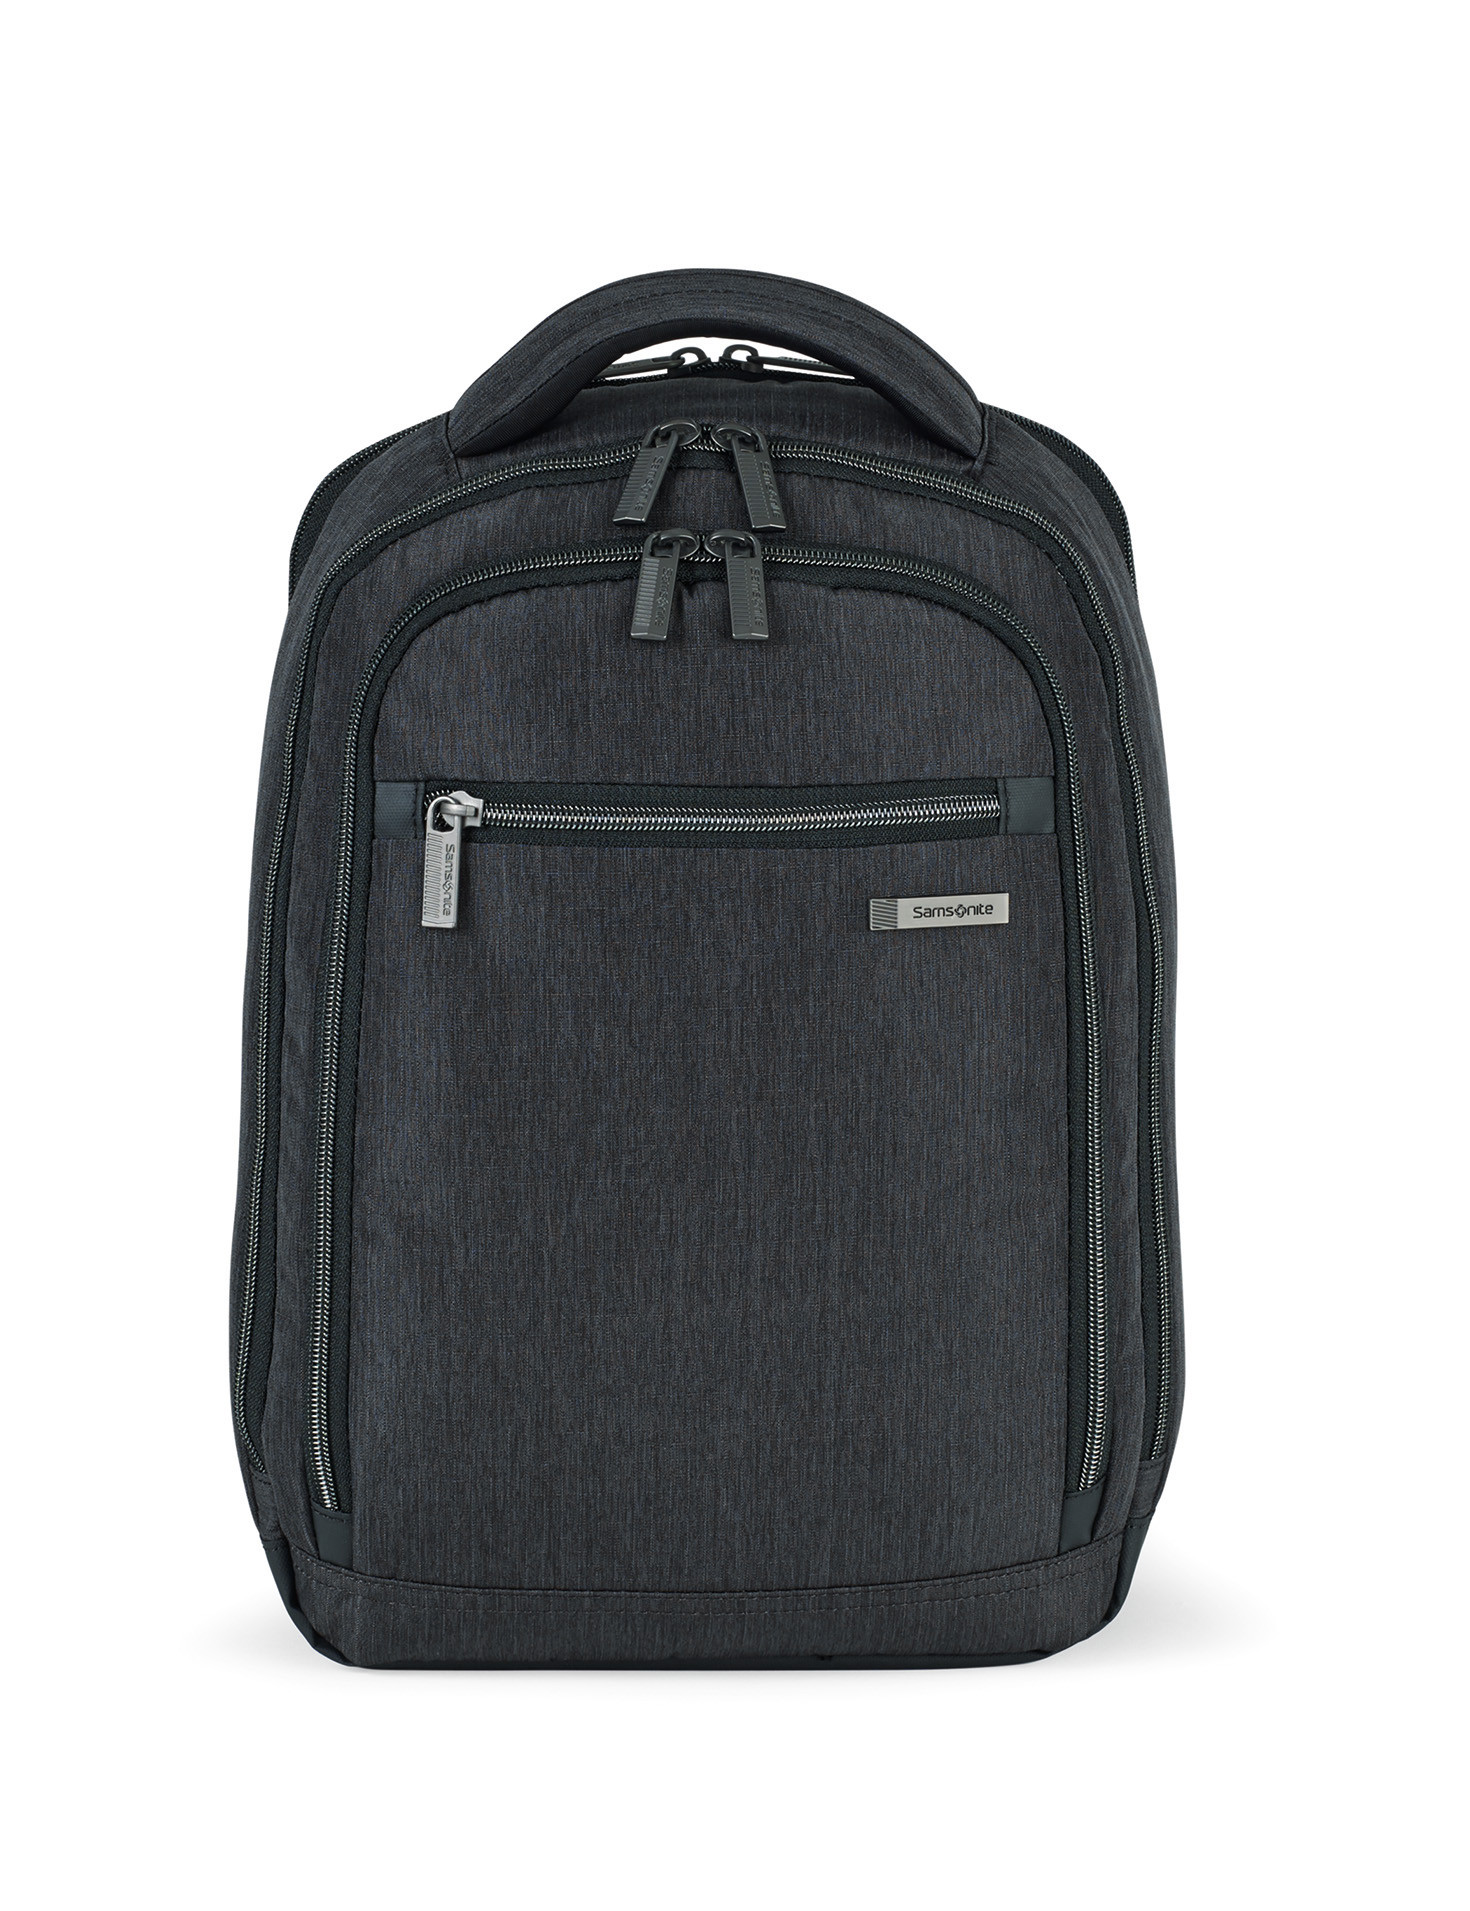 Samsonite 95094 - Modern Utility Small Computer Backpack